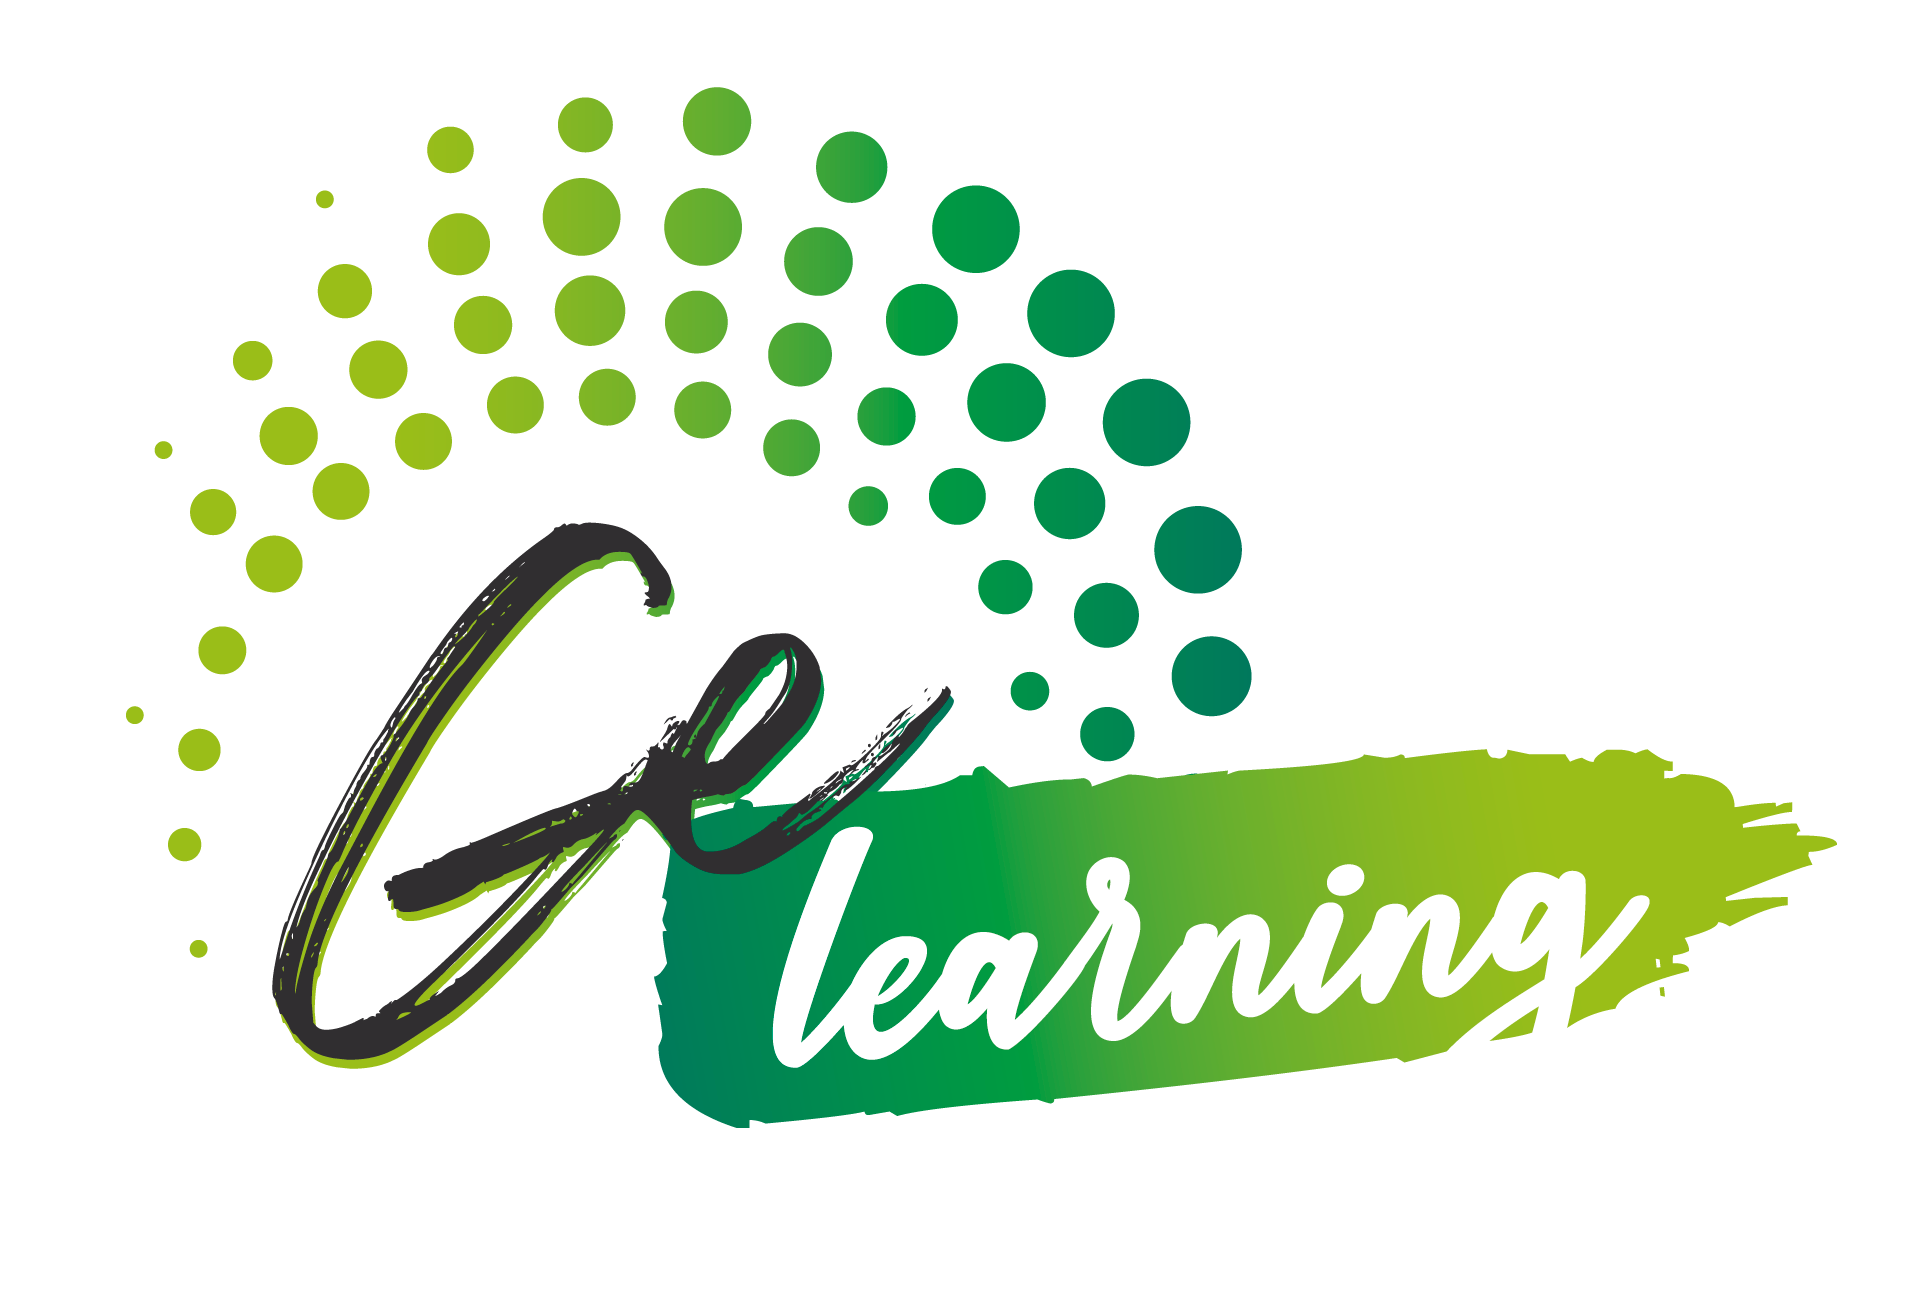 Ge-learning